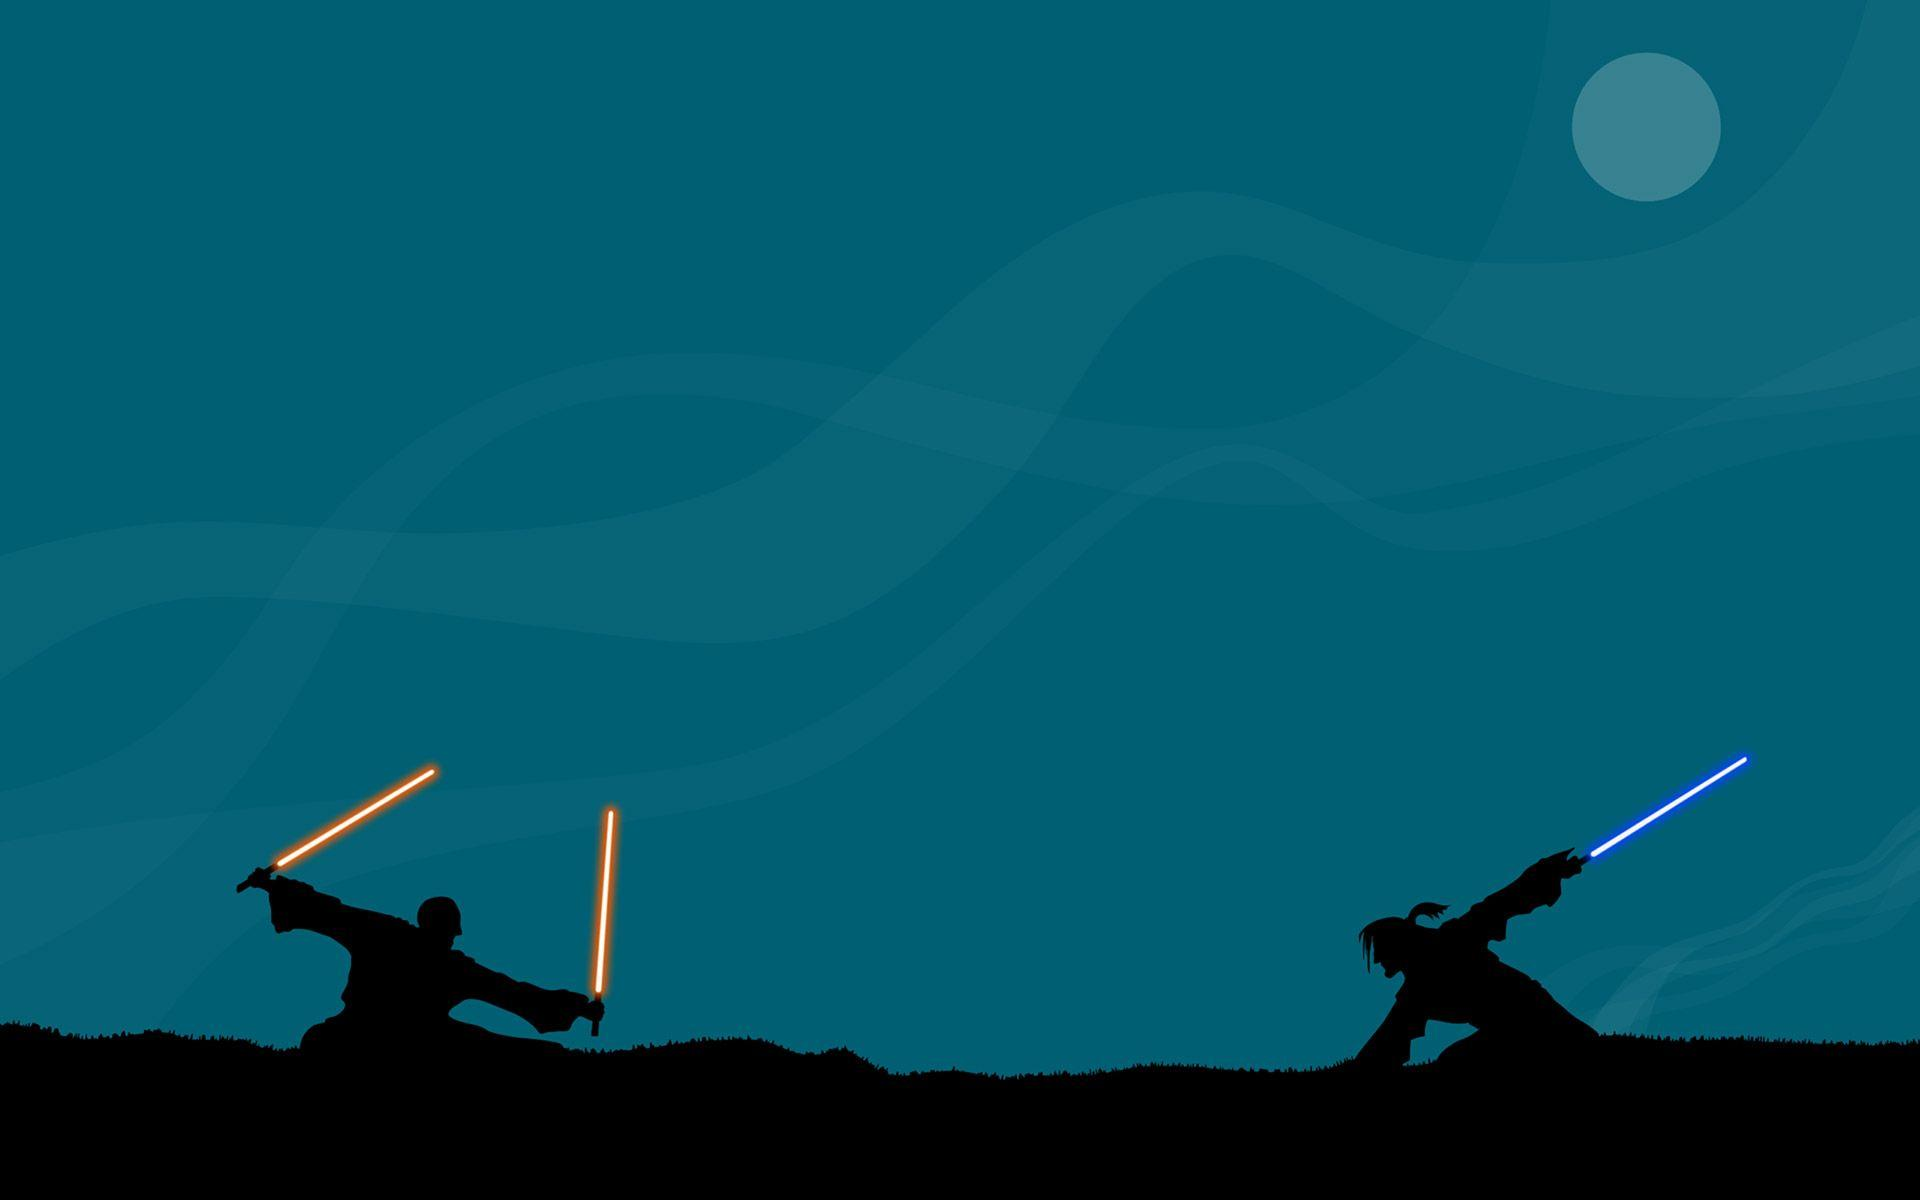 Star Wars Backgrounds Wallpapers  Wallpaper Cave